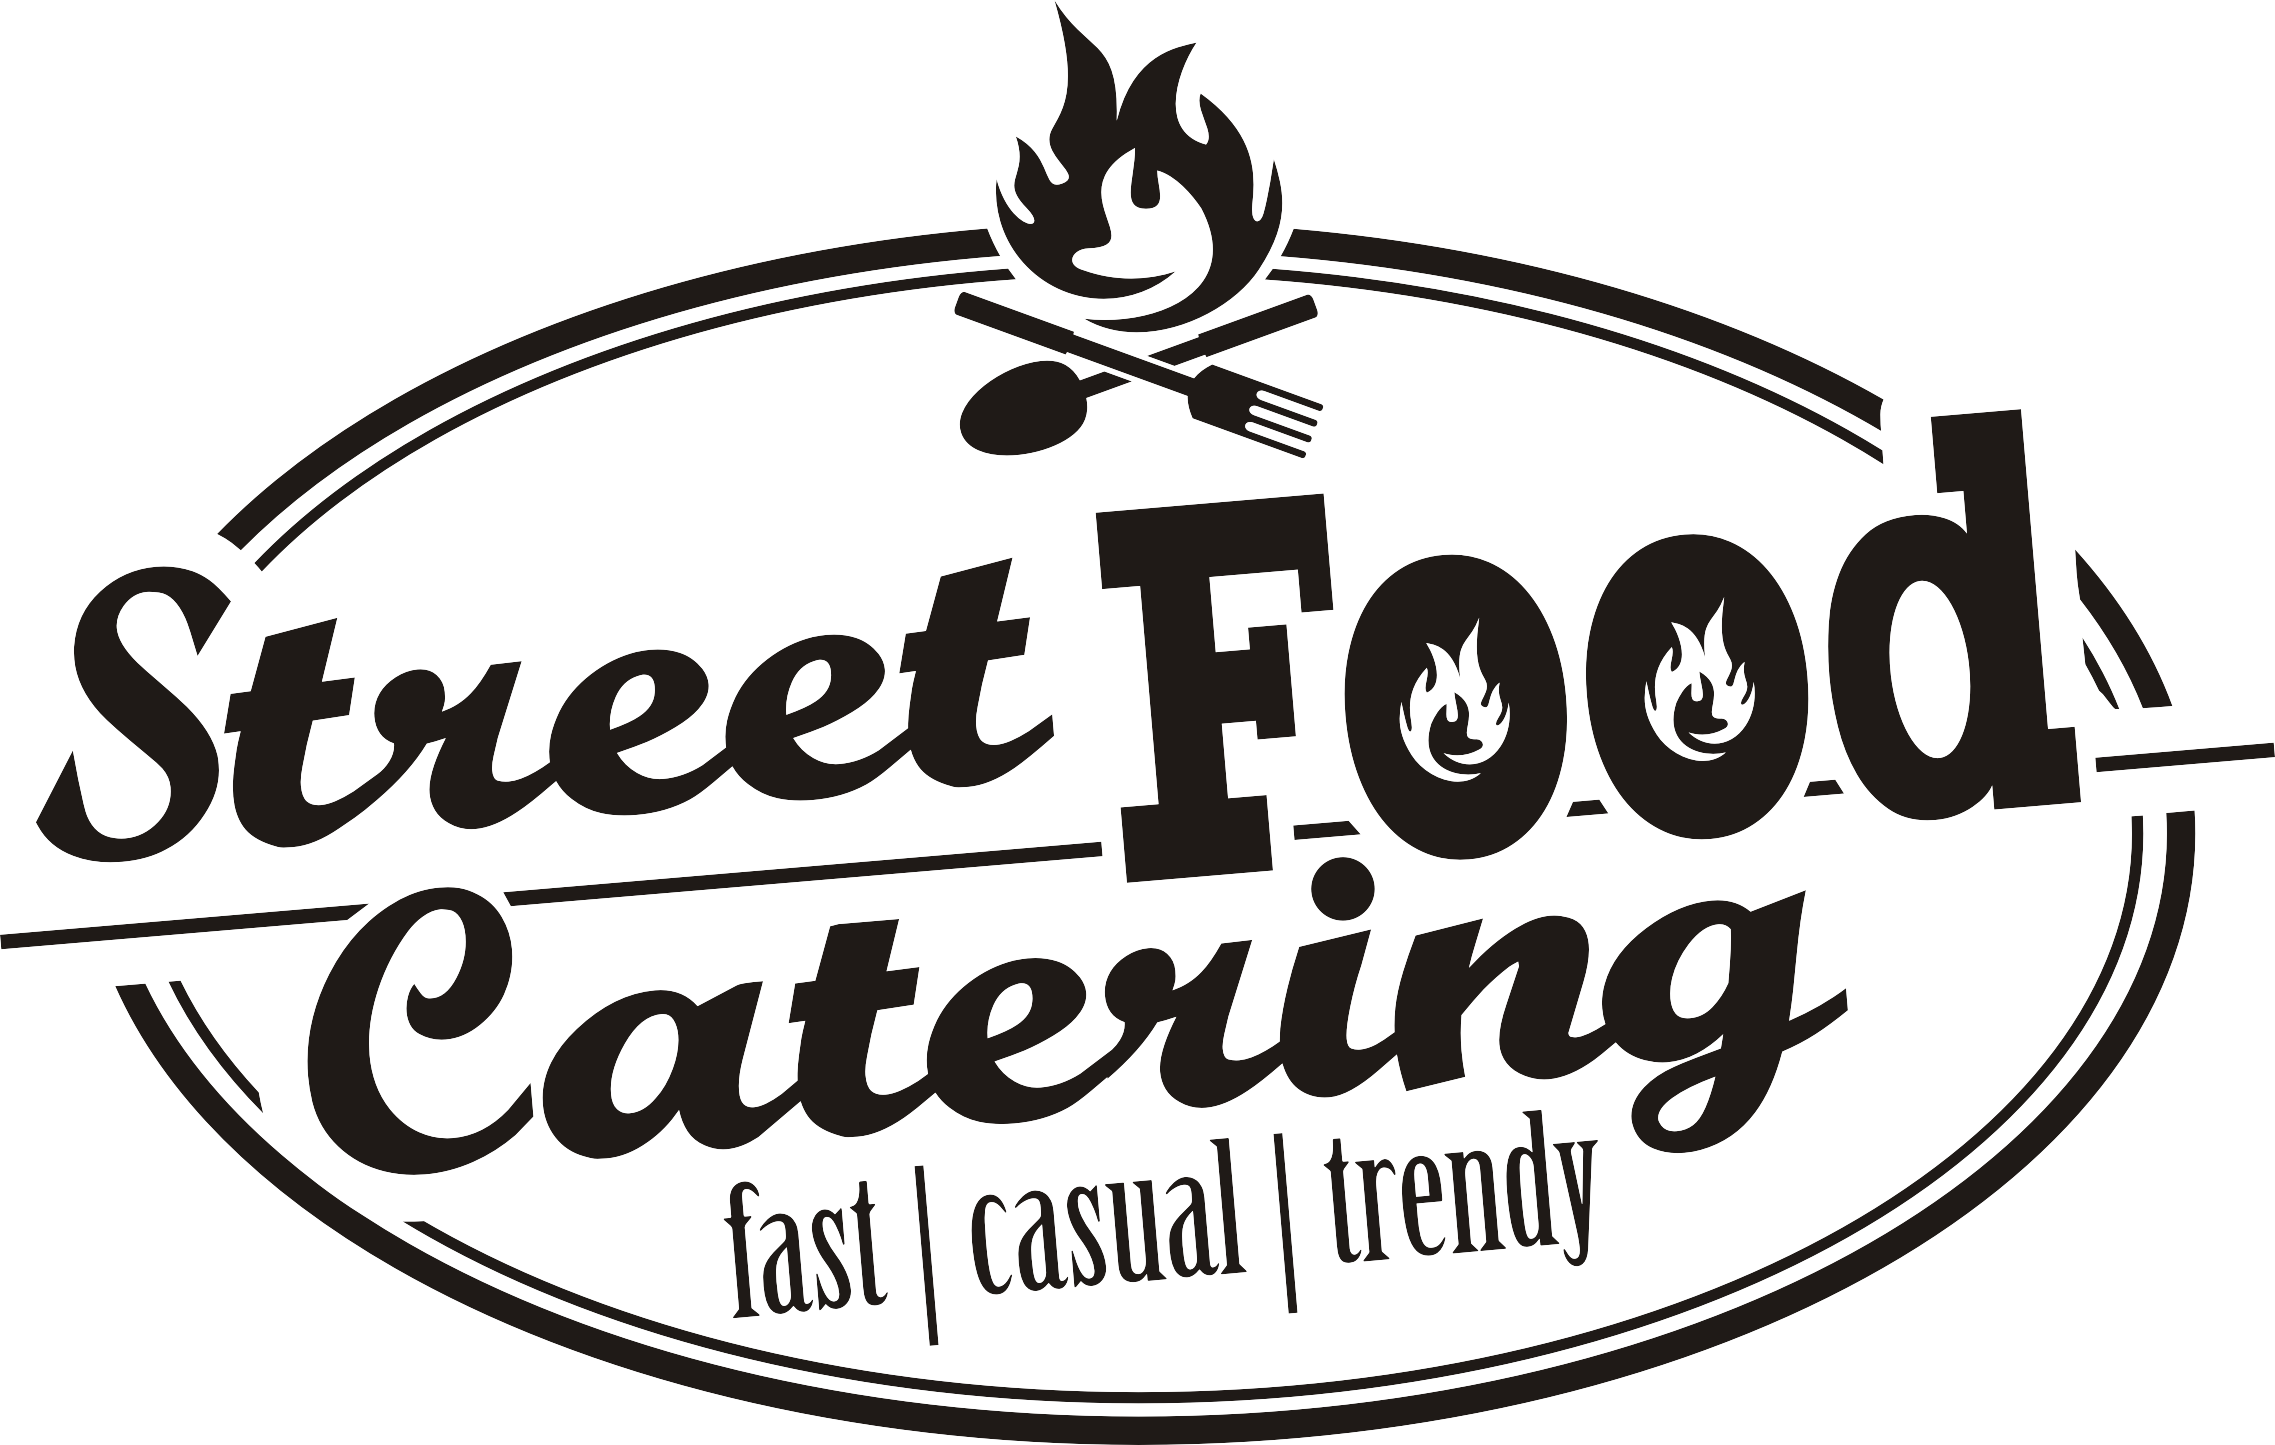 Street Food Catering